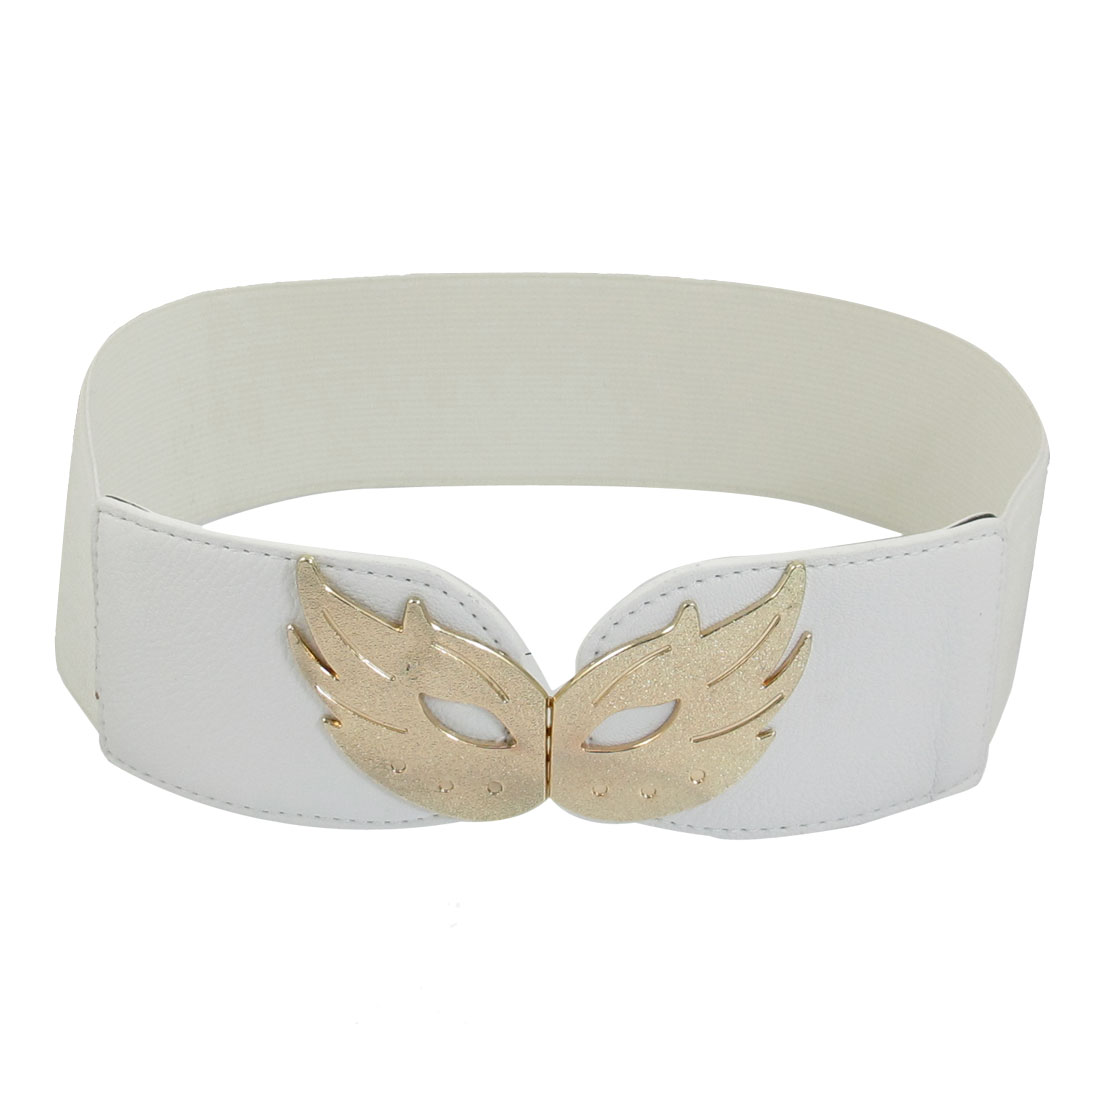 White Faux Leather Decor Textured Pattern Stretchy Waistband for Ladies